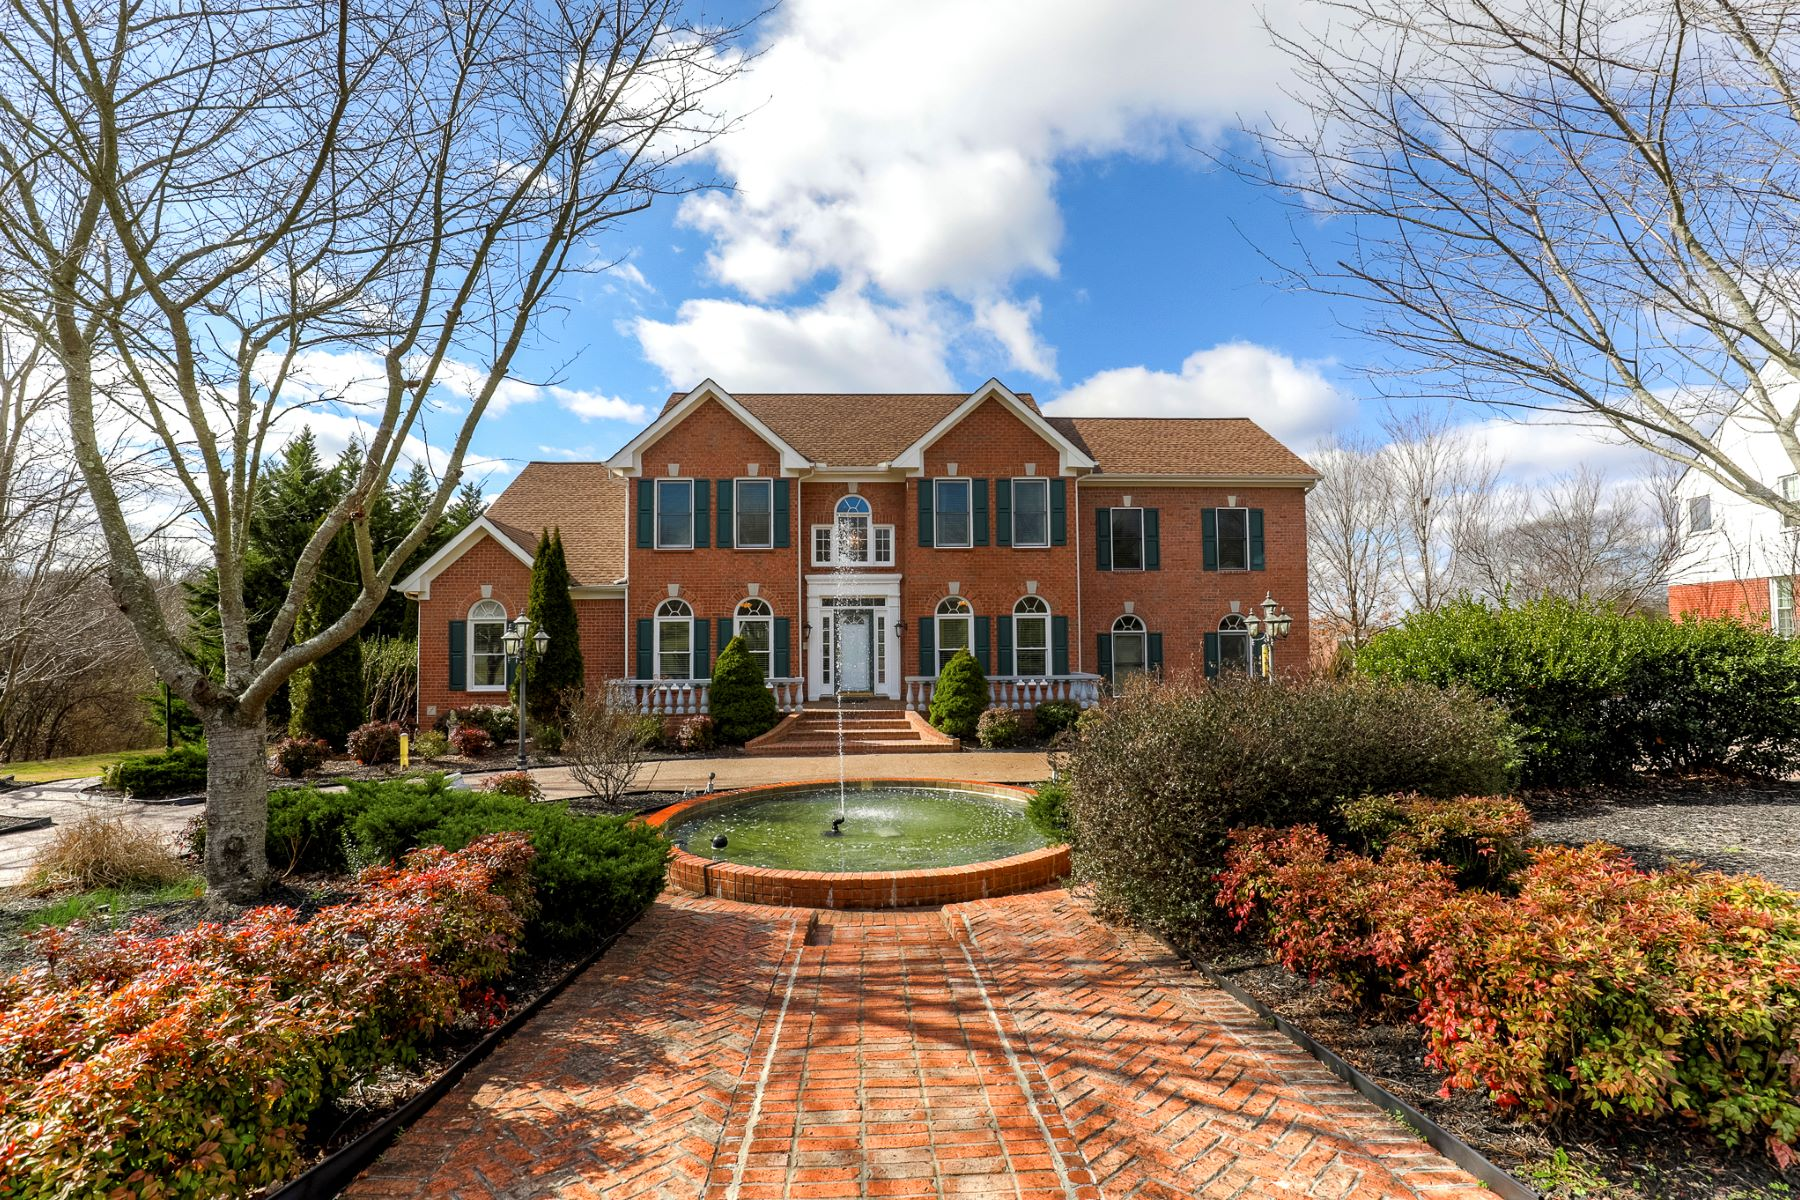 Single Family Home for Sale at Spacious Georgian Style Home in Franklin 209 Springhouse Court Franklin, Tennessee, 37067 United States